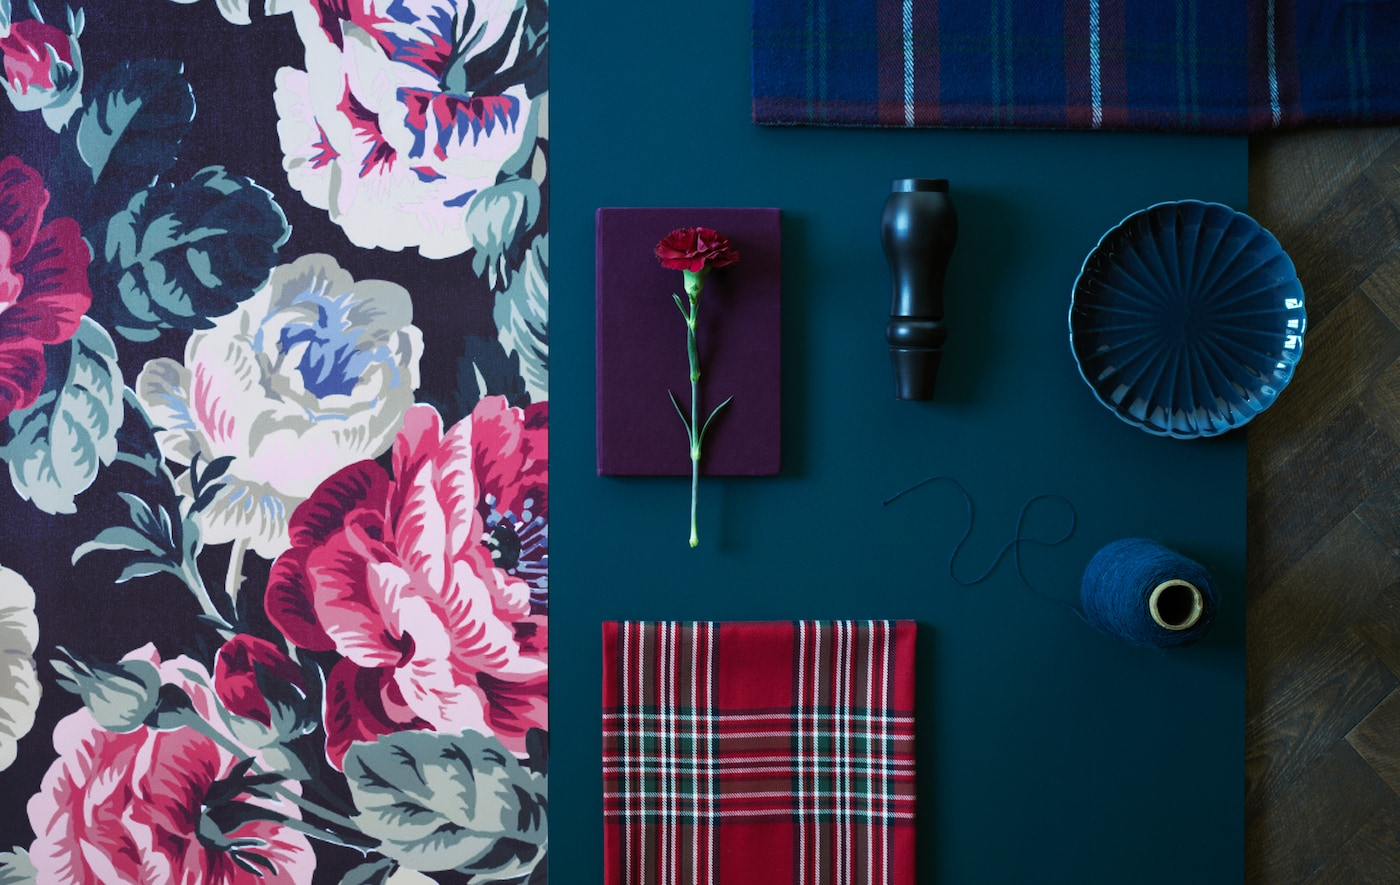 An overhead view of a bold floral textile, plaid textiles, and other decoration arranged on a wooden floor.